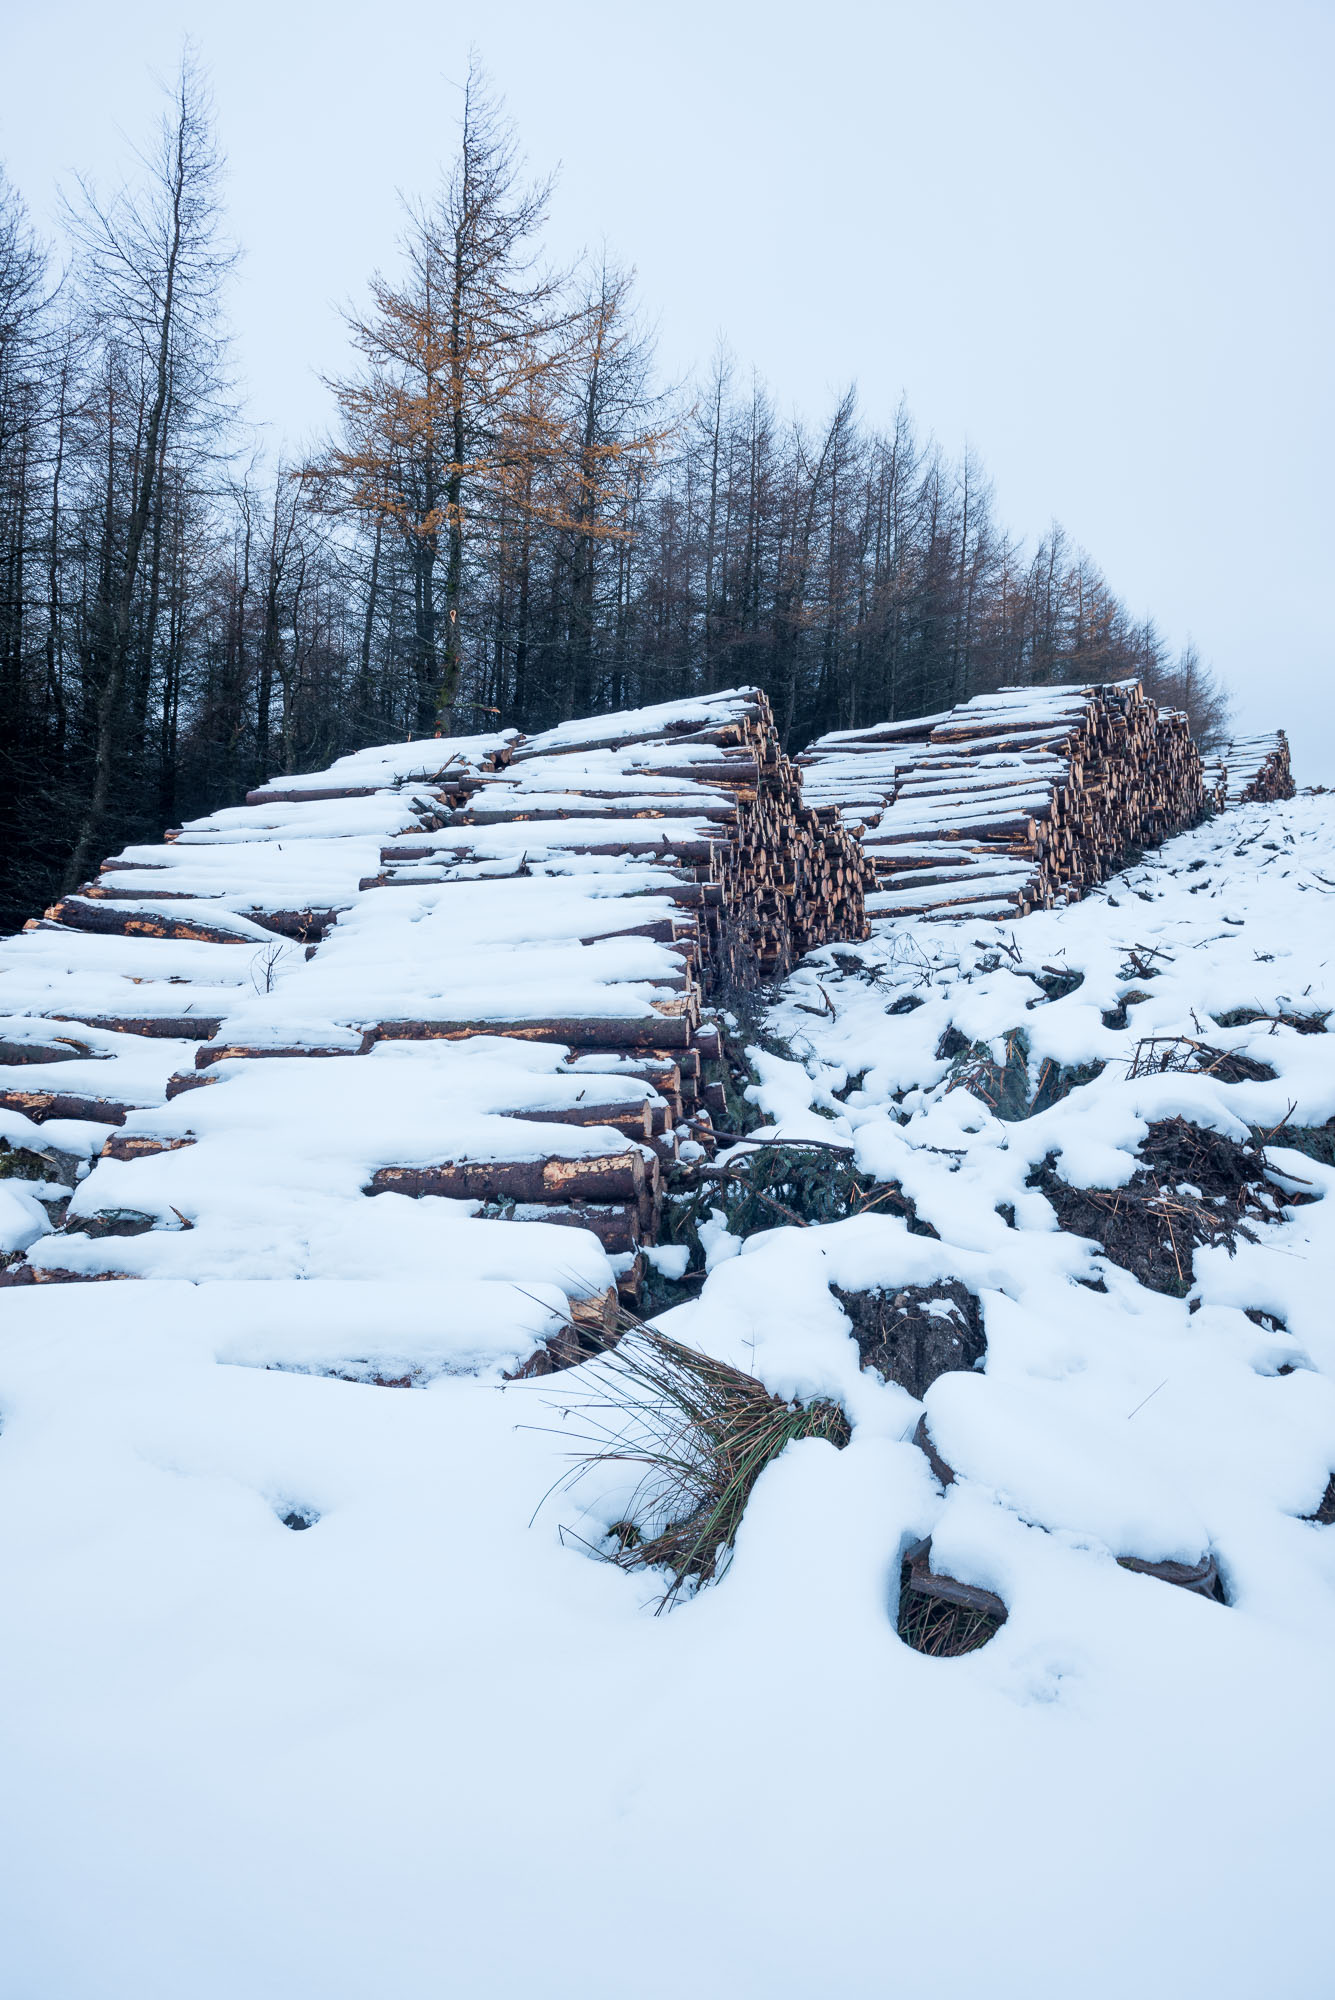 Wood piles in snow